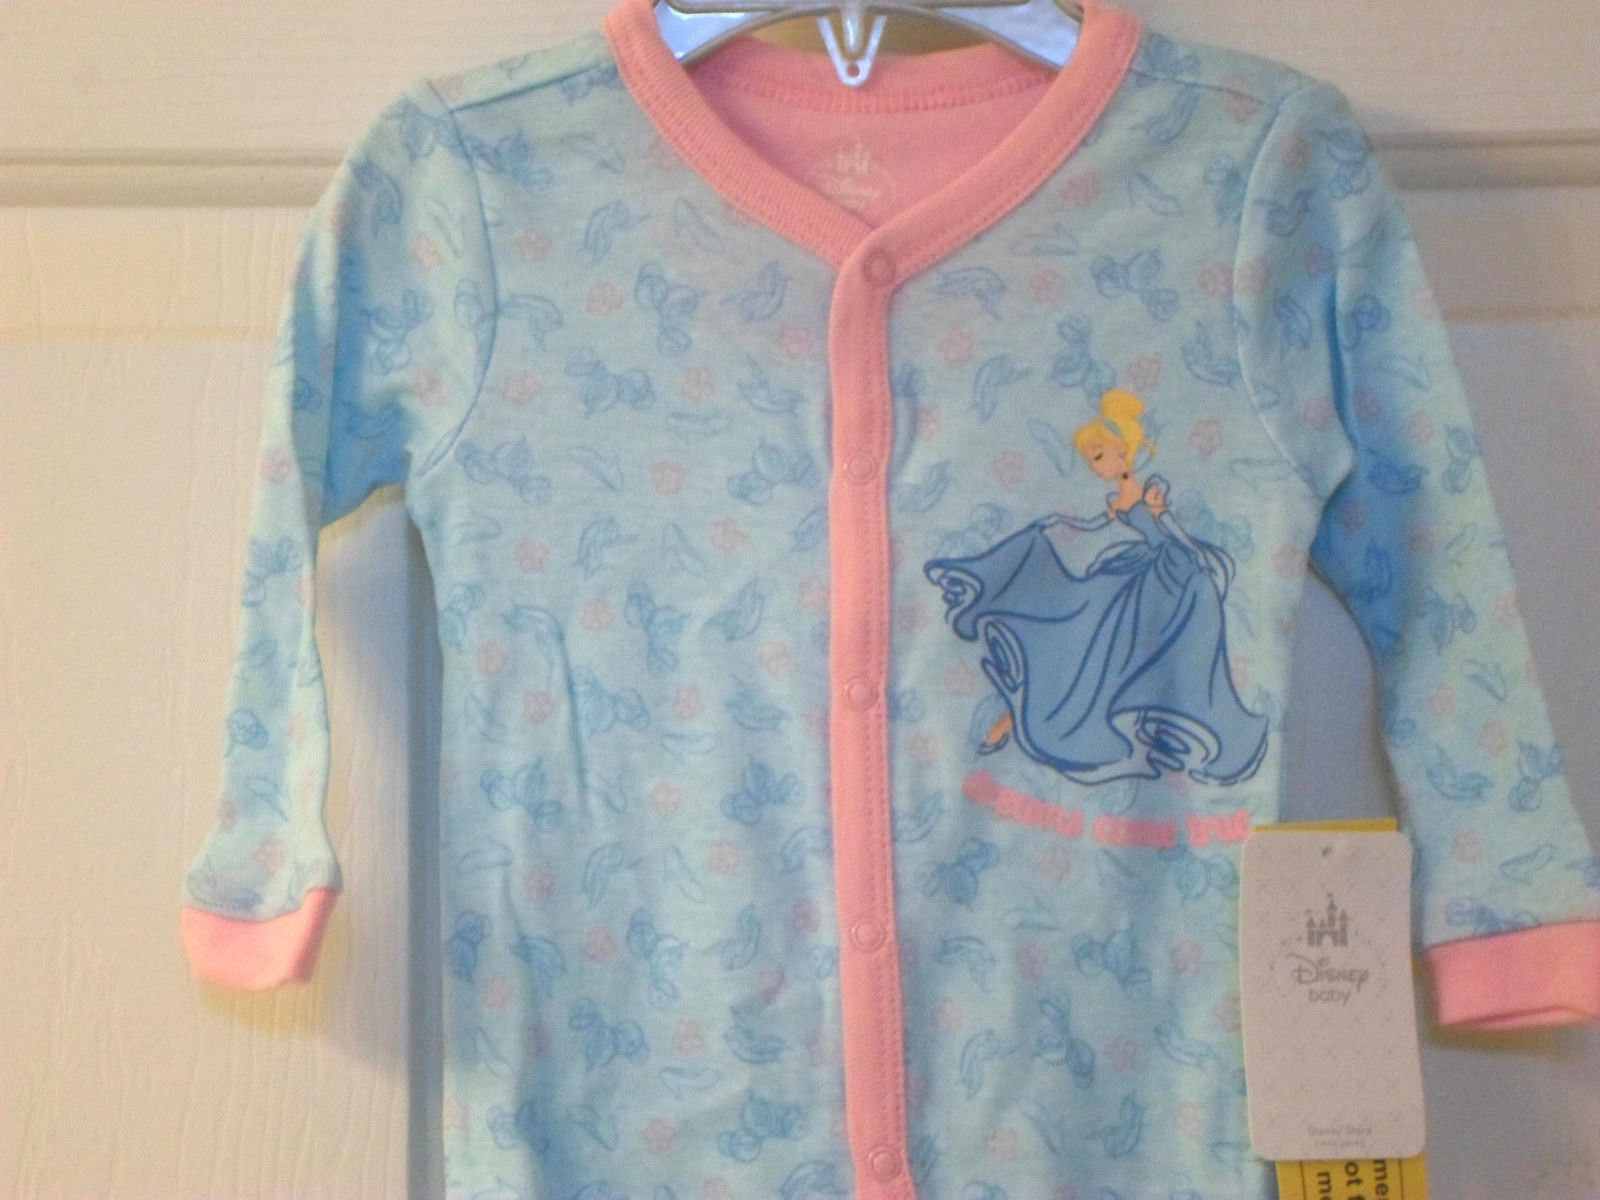 Disney Baby Princess Cinderella Light Weight Sleeper for Baby Sz 6-9 Mos - $19.99